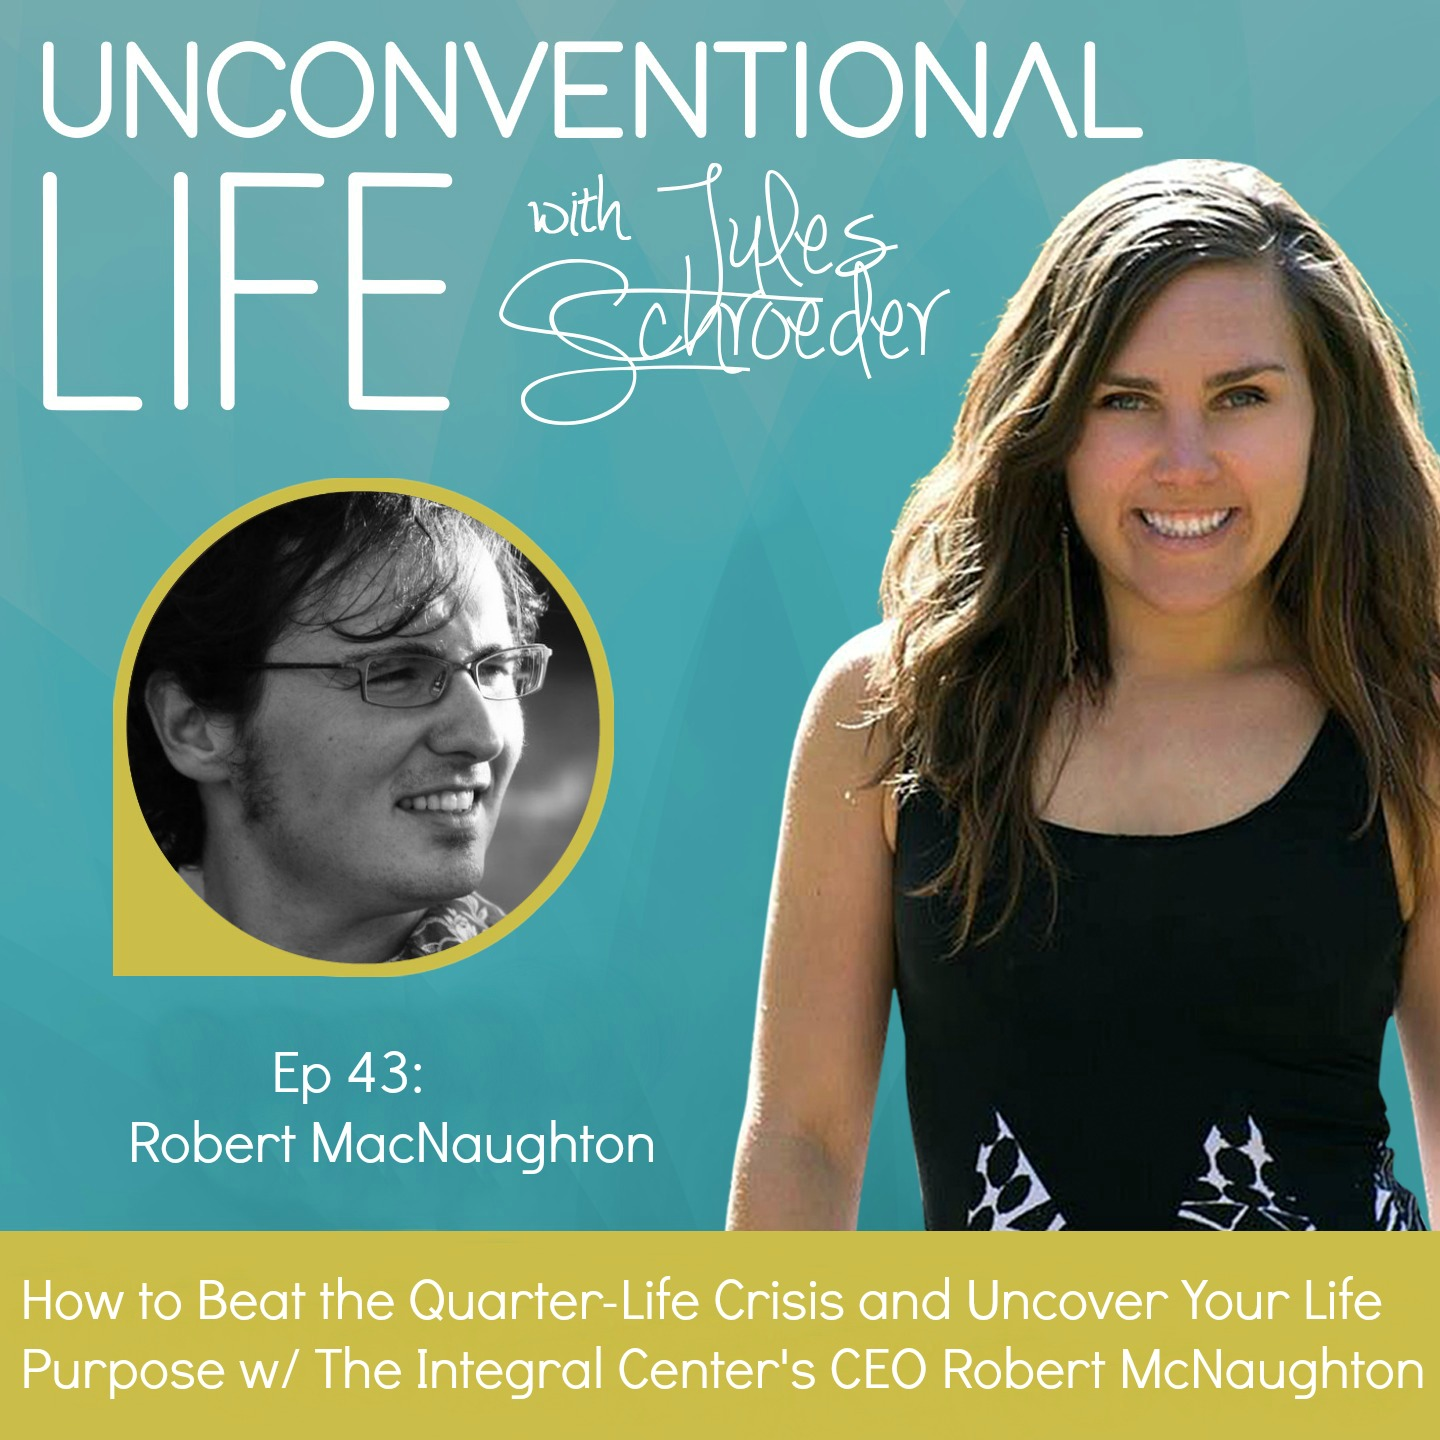 millennials this is what your quarter life crisis is telling you unconventional life jules schroeder